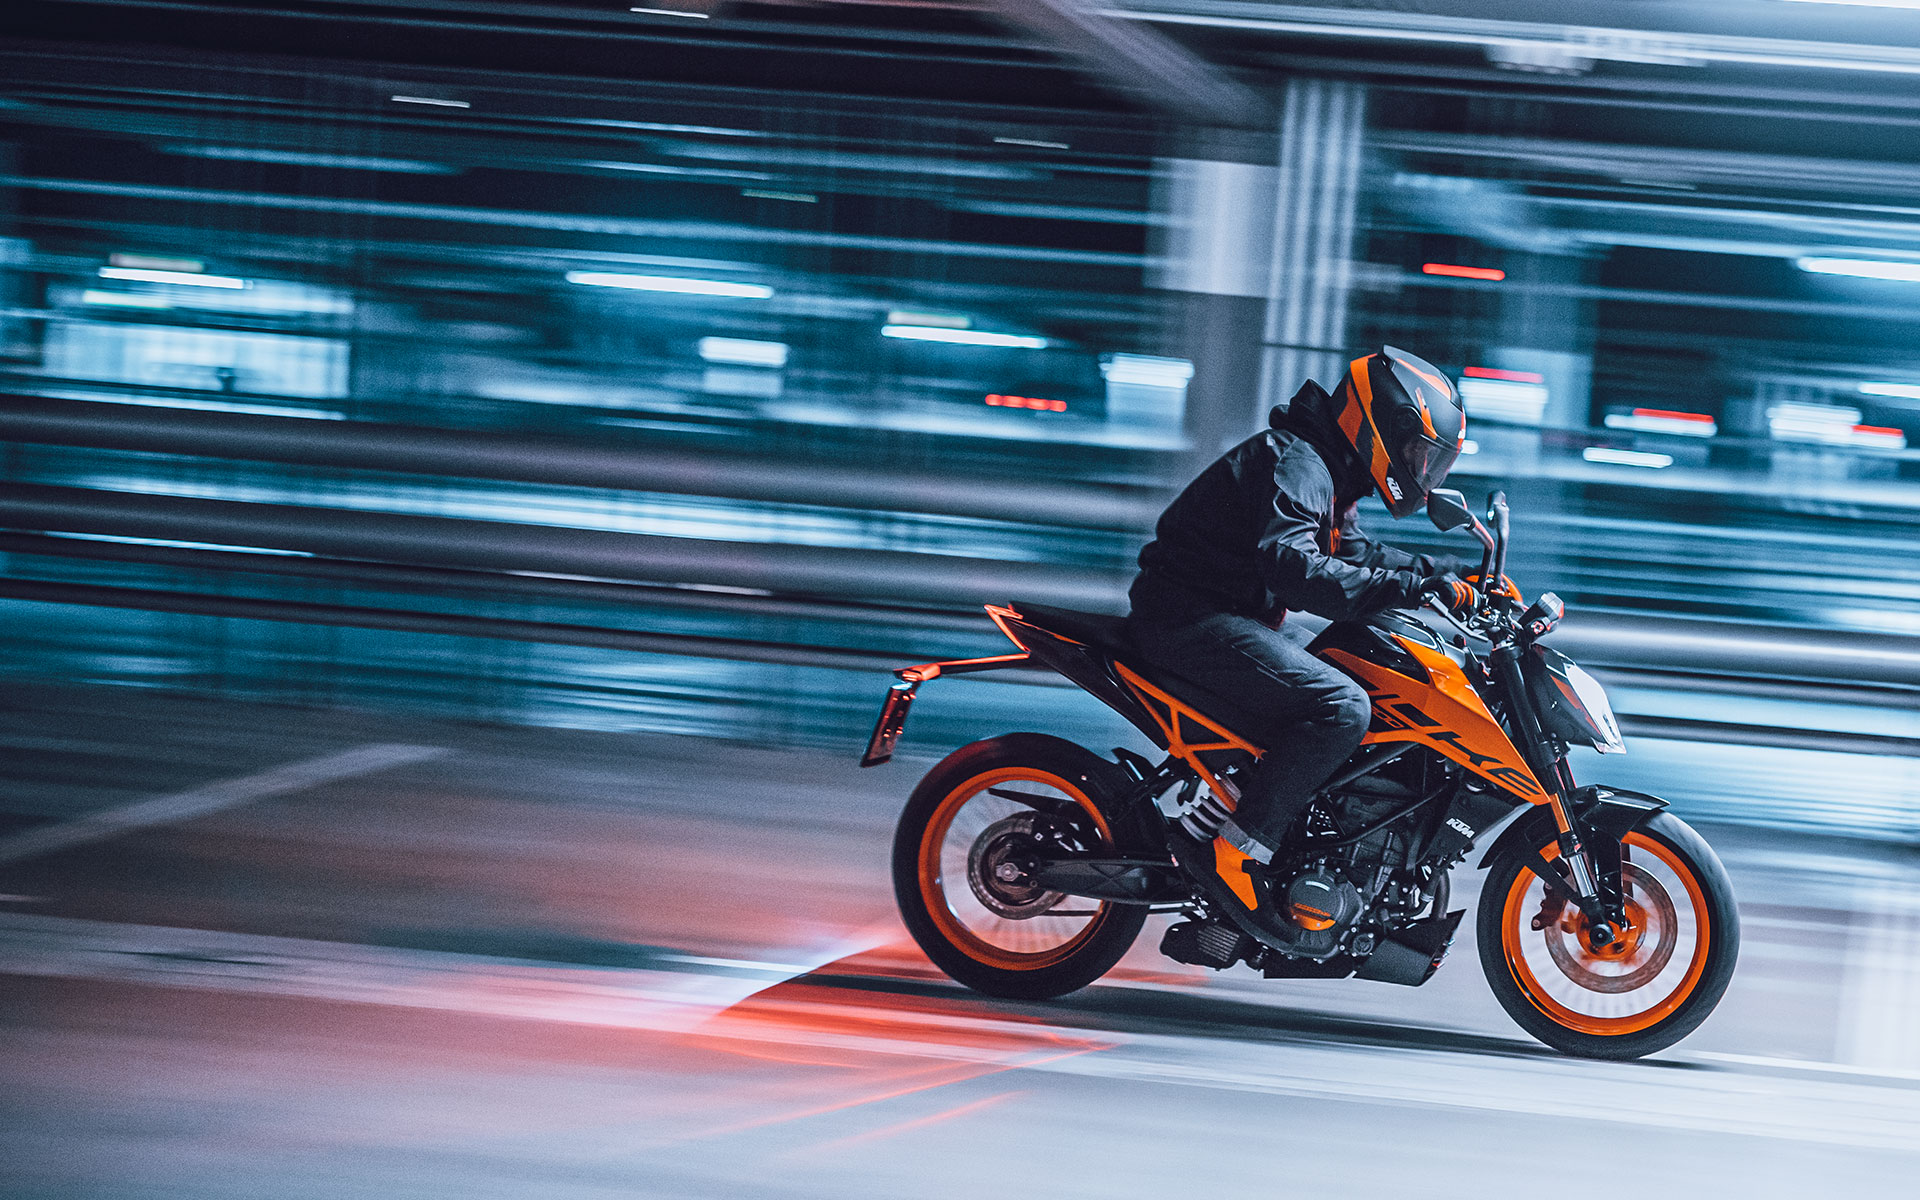 KTM Malaysia to launch the updated 2021 KTM 200 Duke this week?